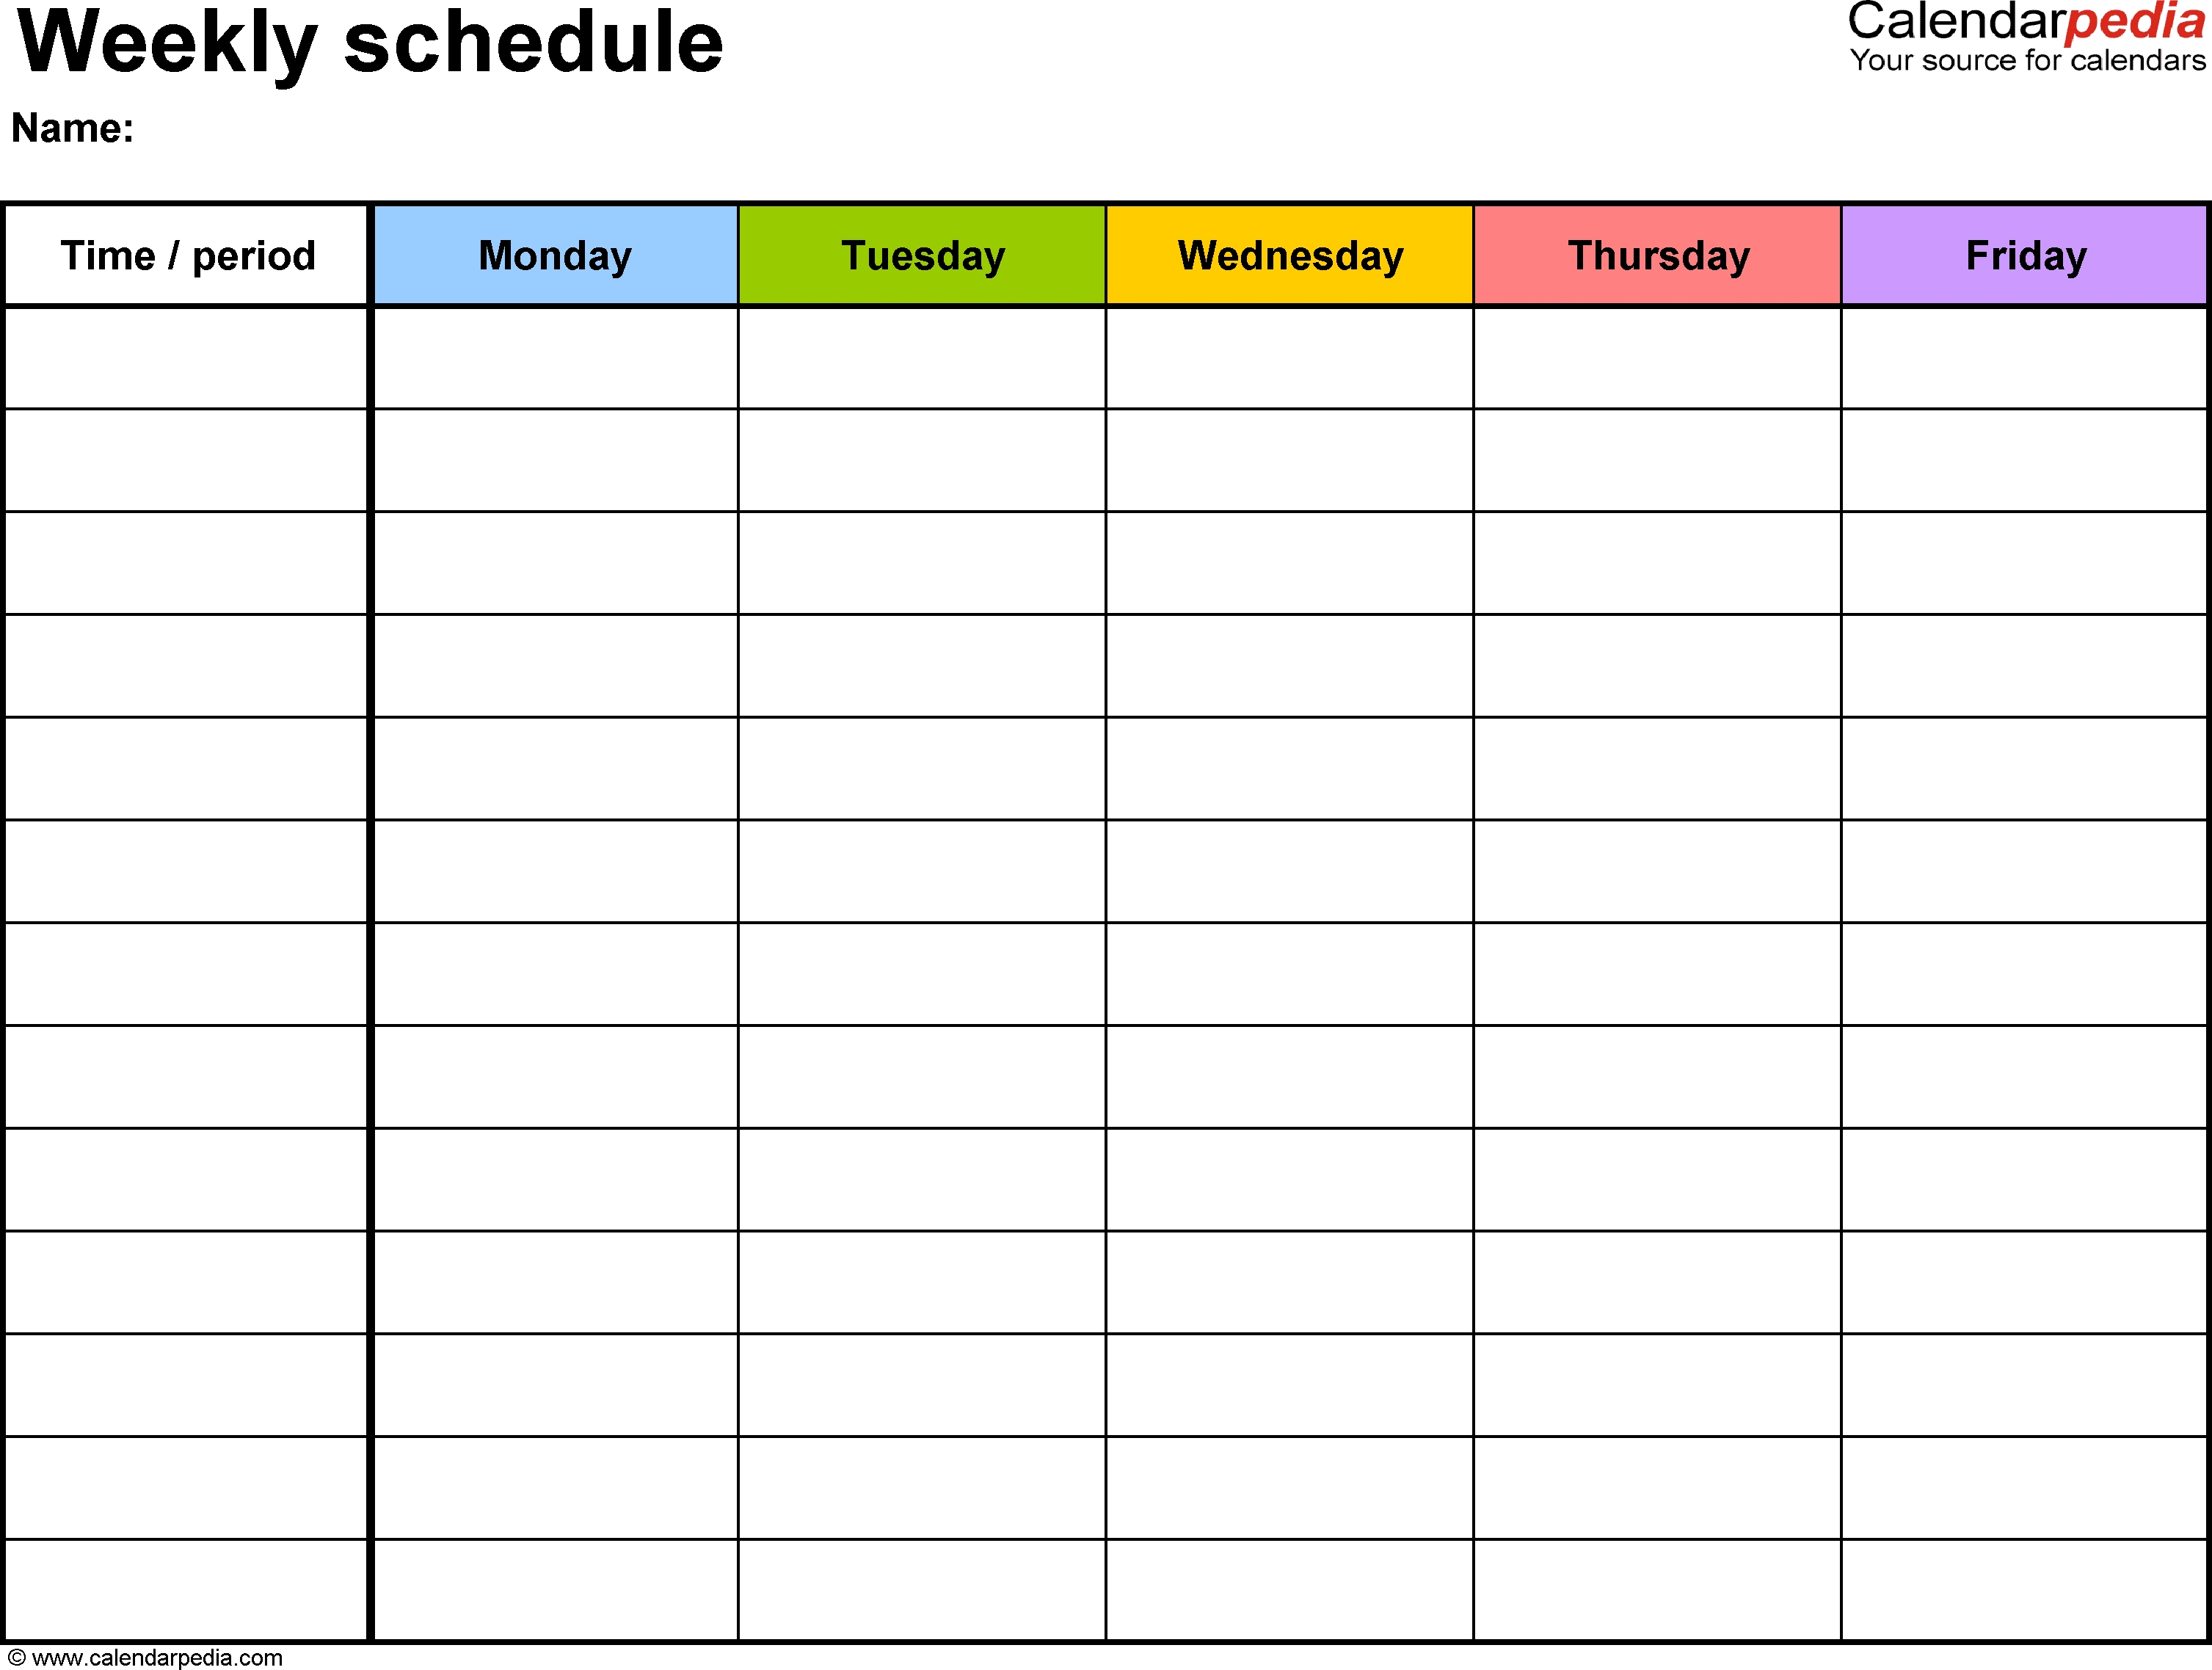 Free Weekly Schedule Templates For Excel - 18 Templates_4 Week Blank Calendar Printable